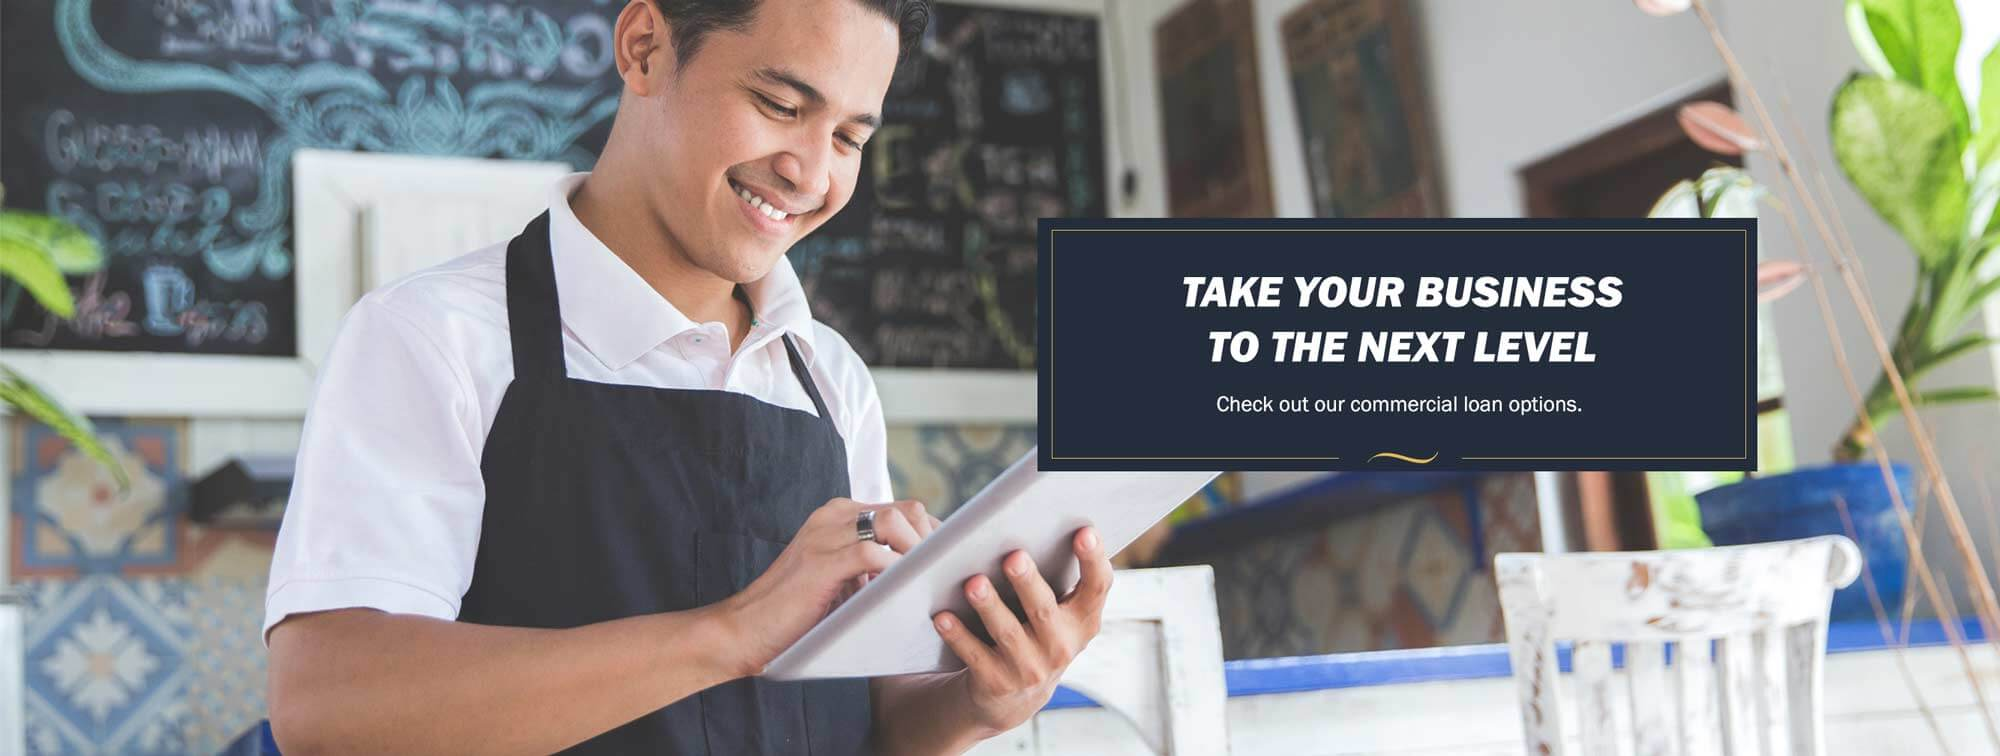 Take your business to the next level. Check out our commercial loan options.